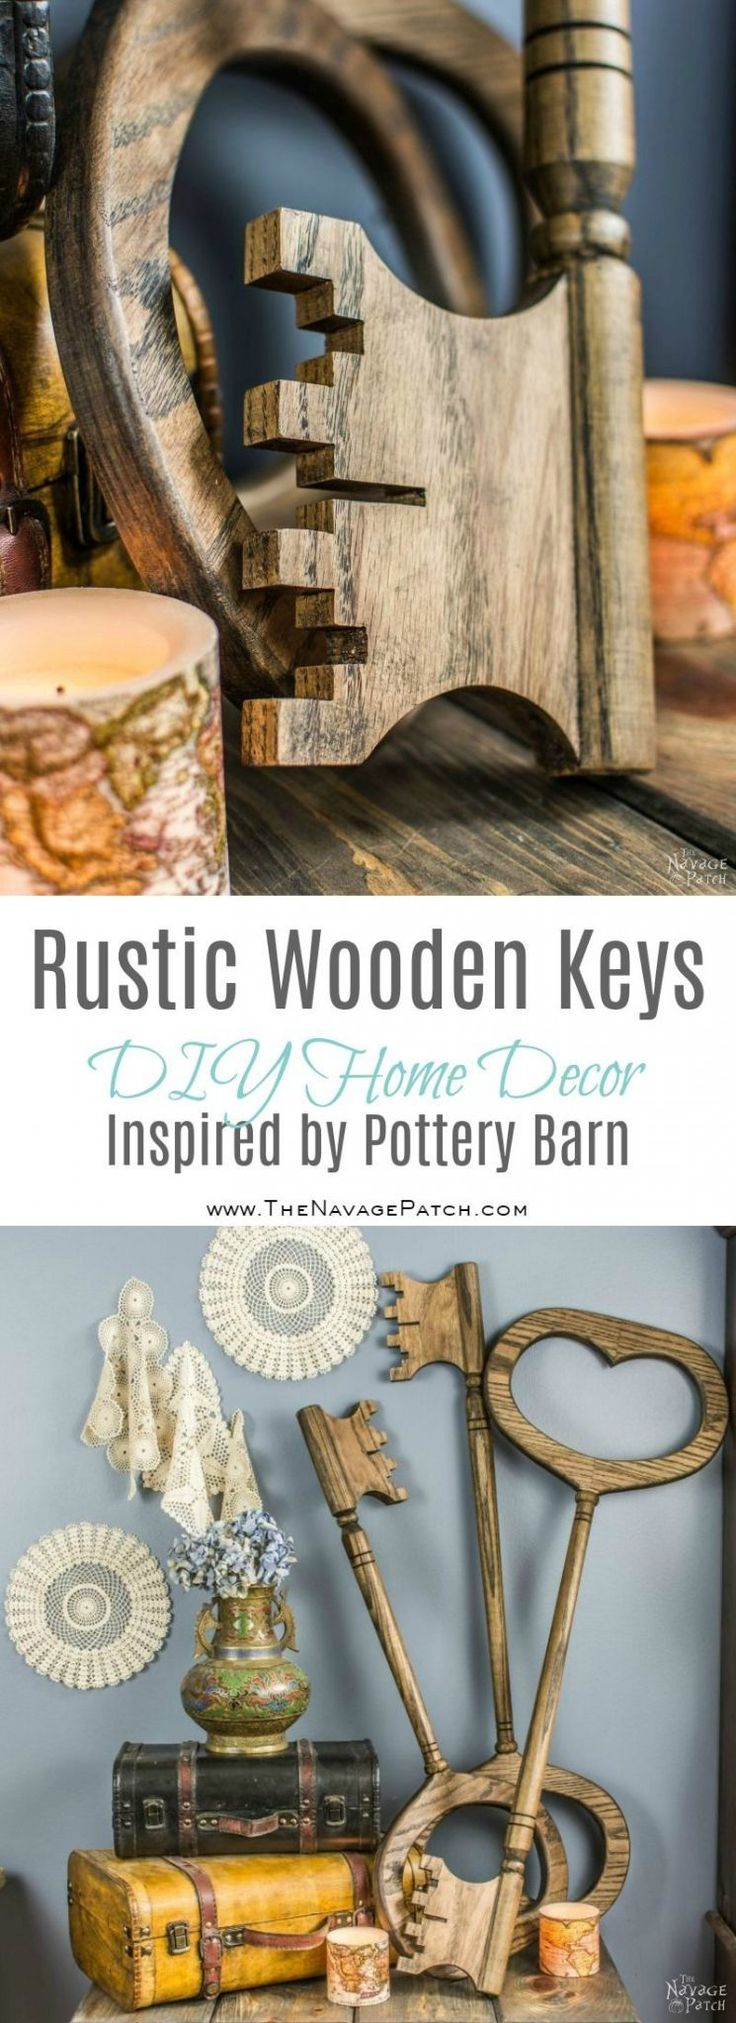 Rustic Wooden Keys Inspired by Pottery Barn   Pottery Barn Knockoff   DIY Wooden...